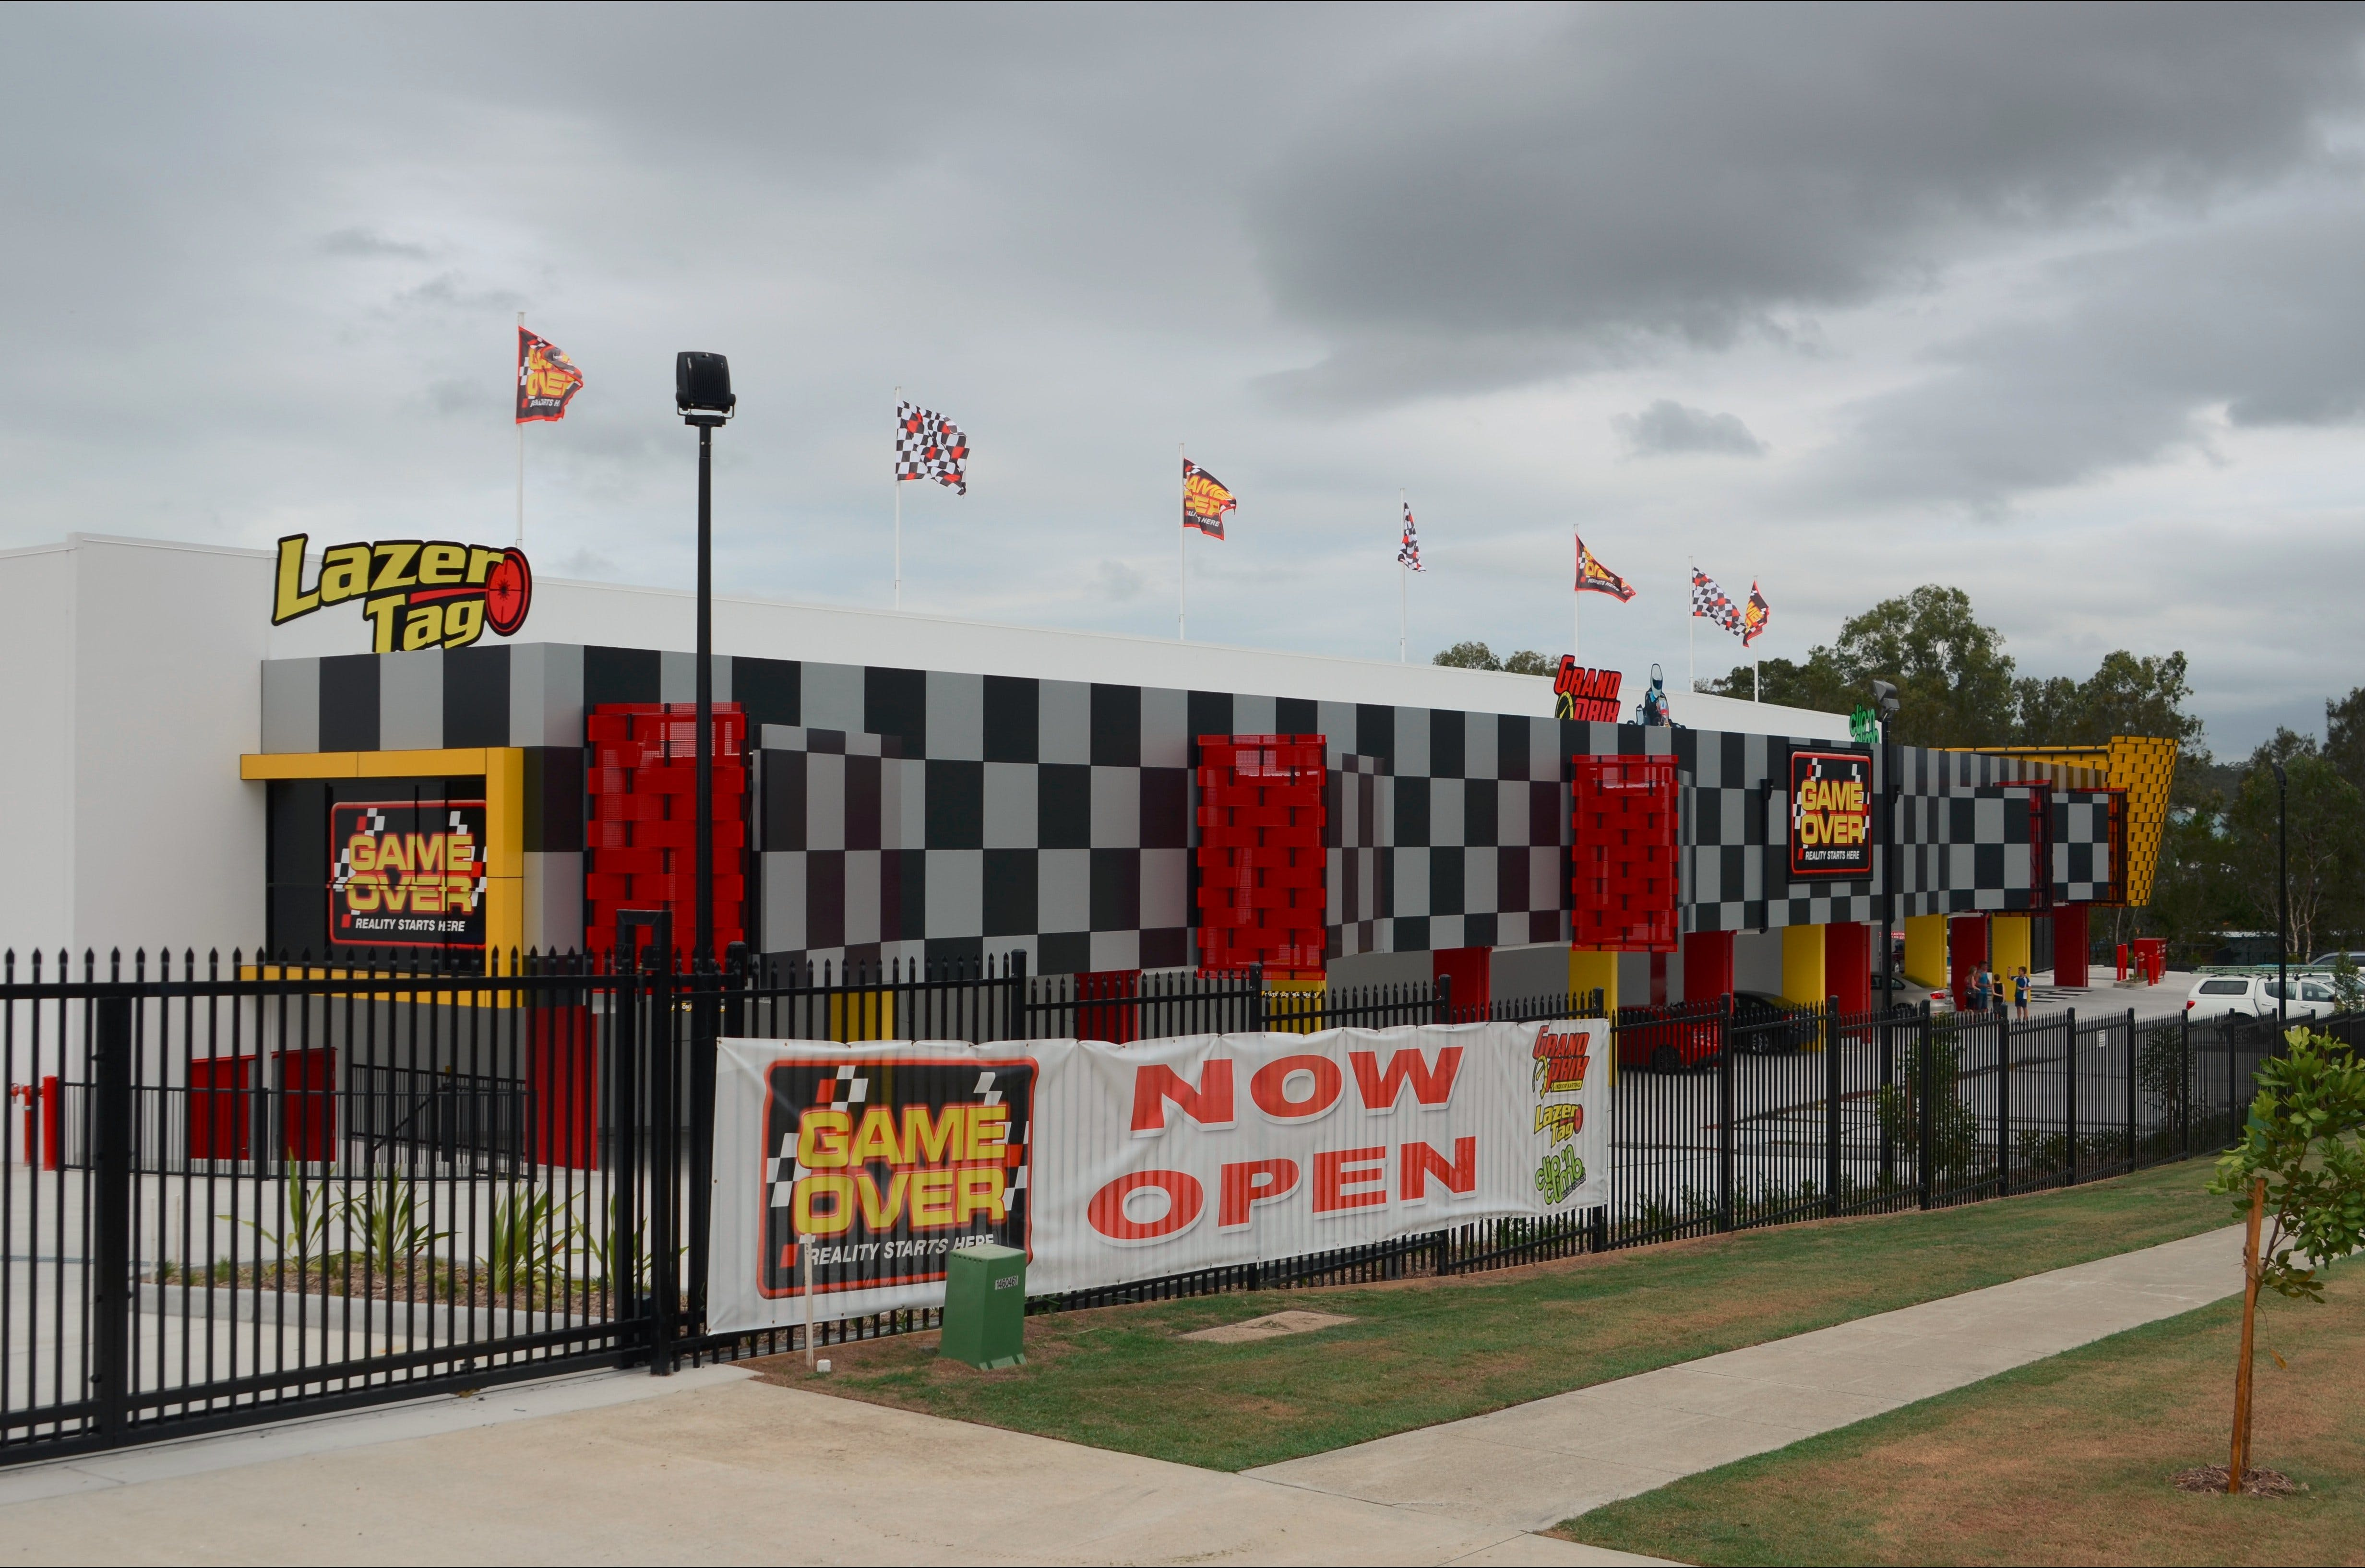 Game Over Indoor Go Karting Adventure Climbing Walls and Lazer Tag Centre - Great Ocean Road Tourism